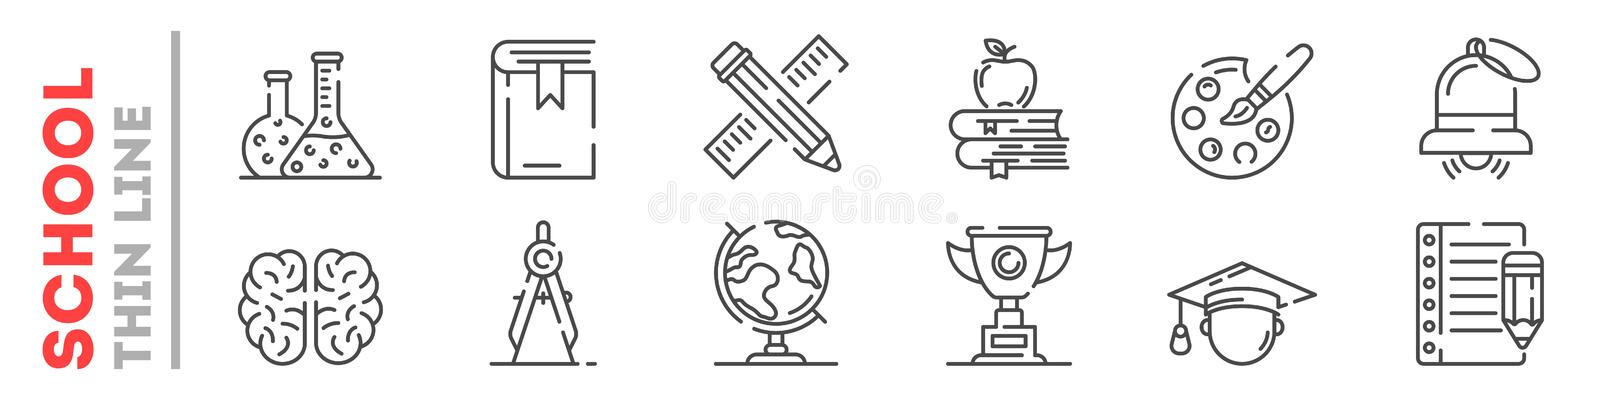 Set of thin line icons about education at school, college, university isolated on white. royalty free illustration